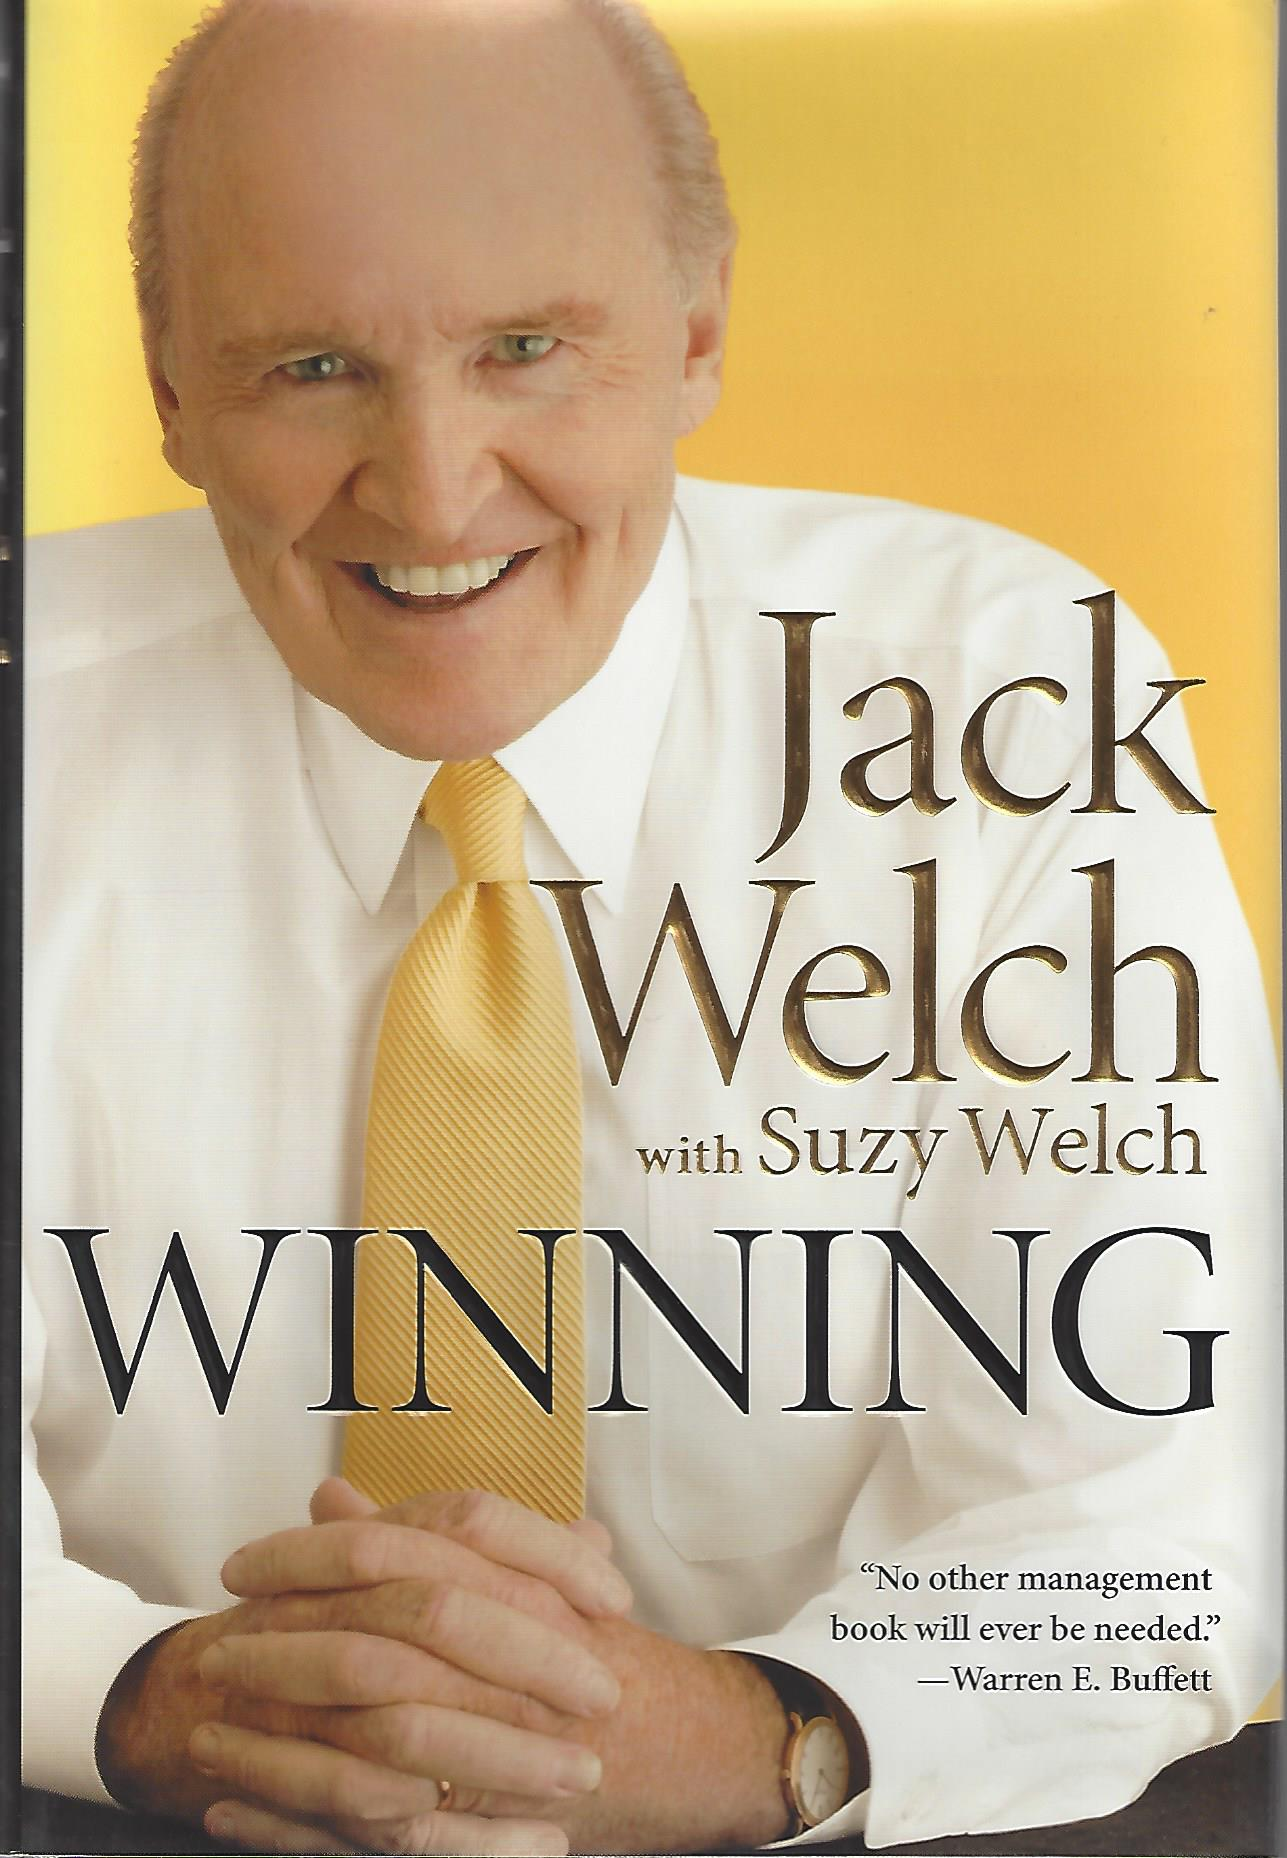 Winning Jack Welsh with Suzy Welch